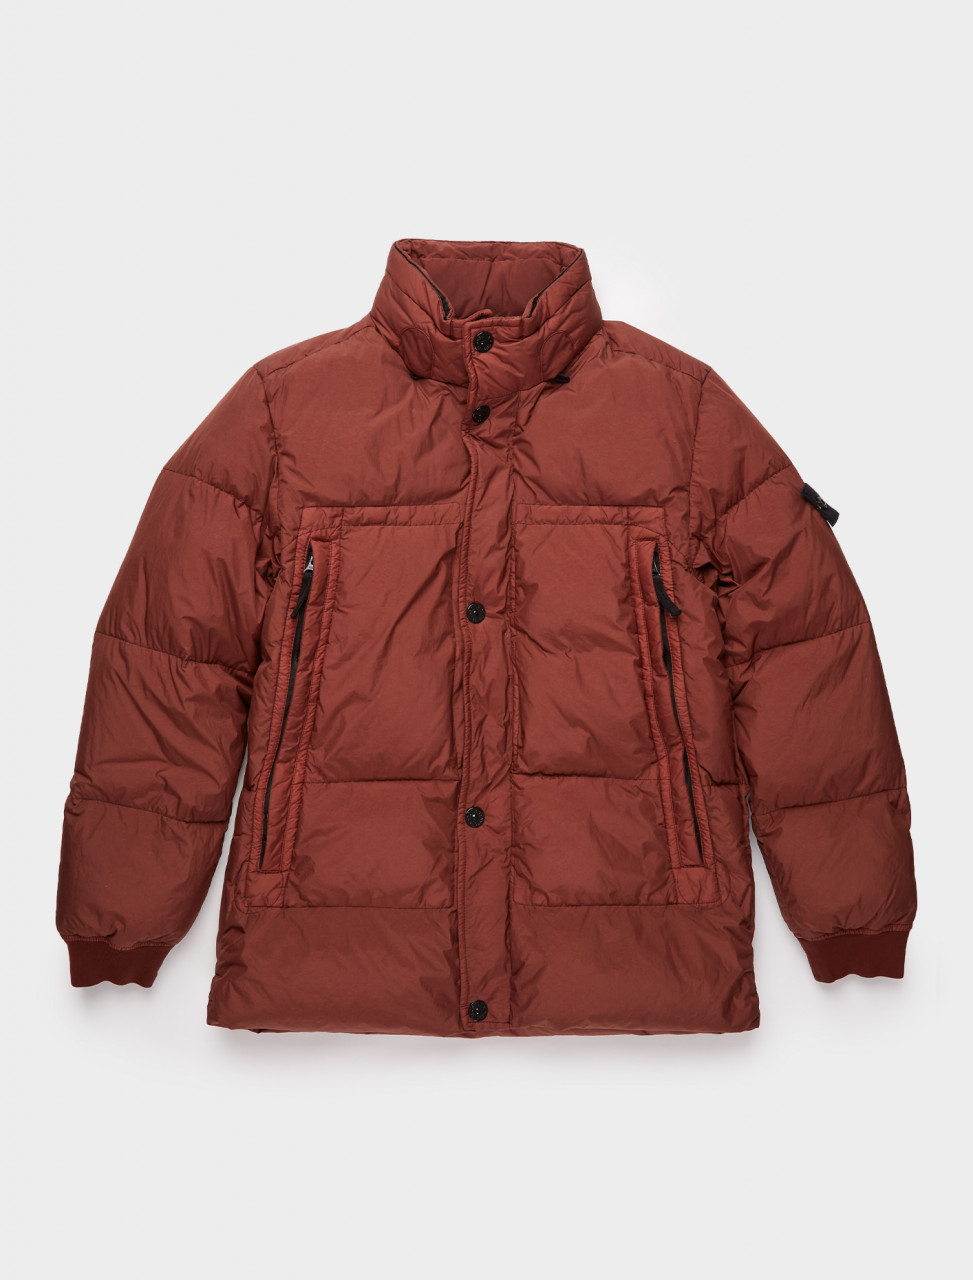 241-MO731540123-V0011 STONE ISLAND DOWN JACKET BROWN